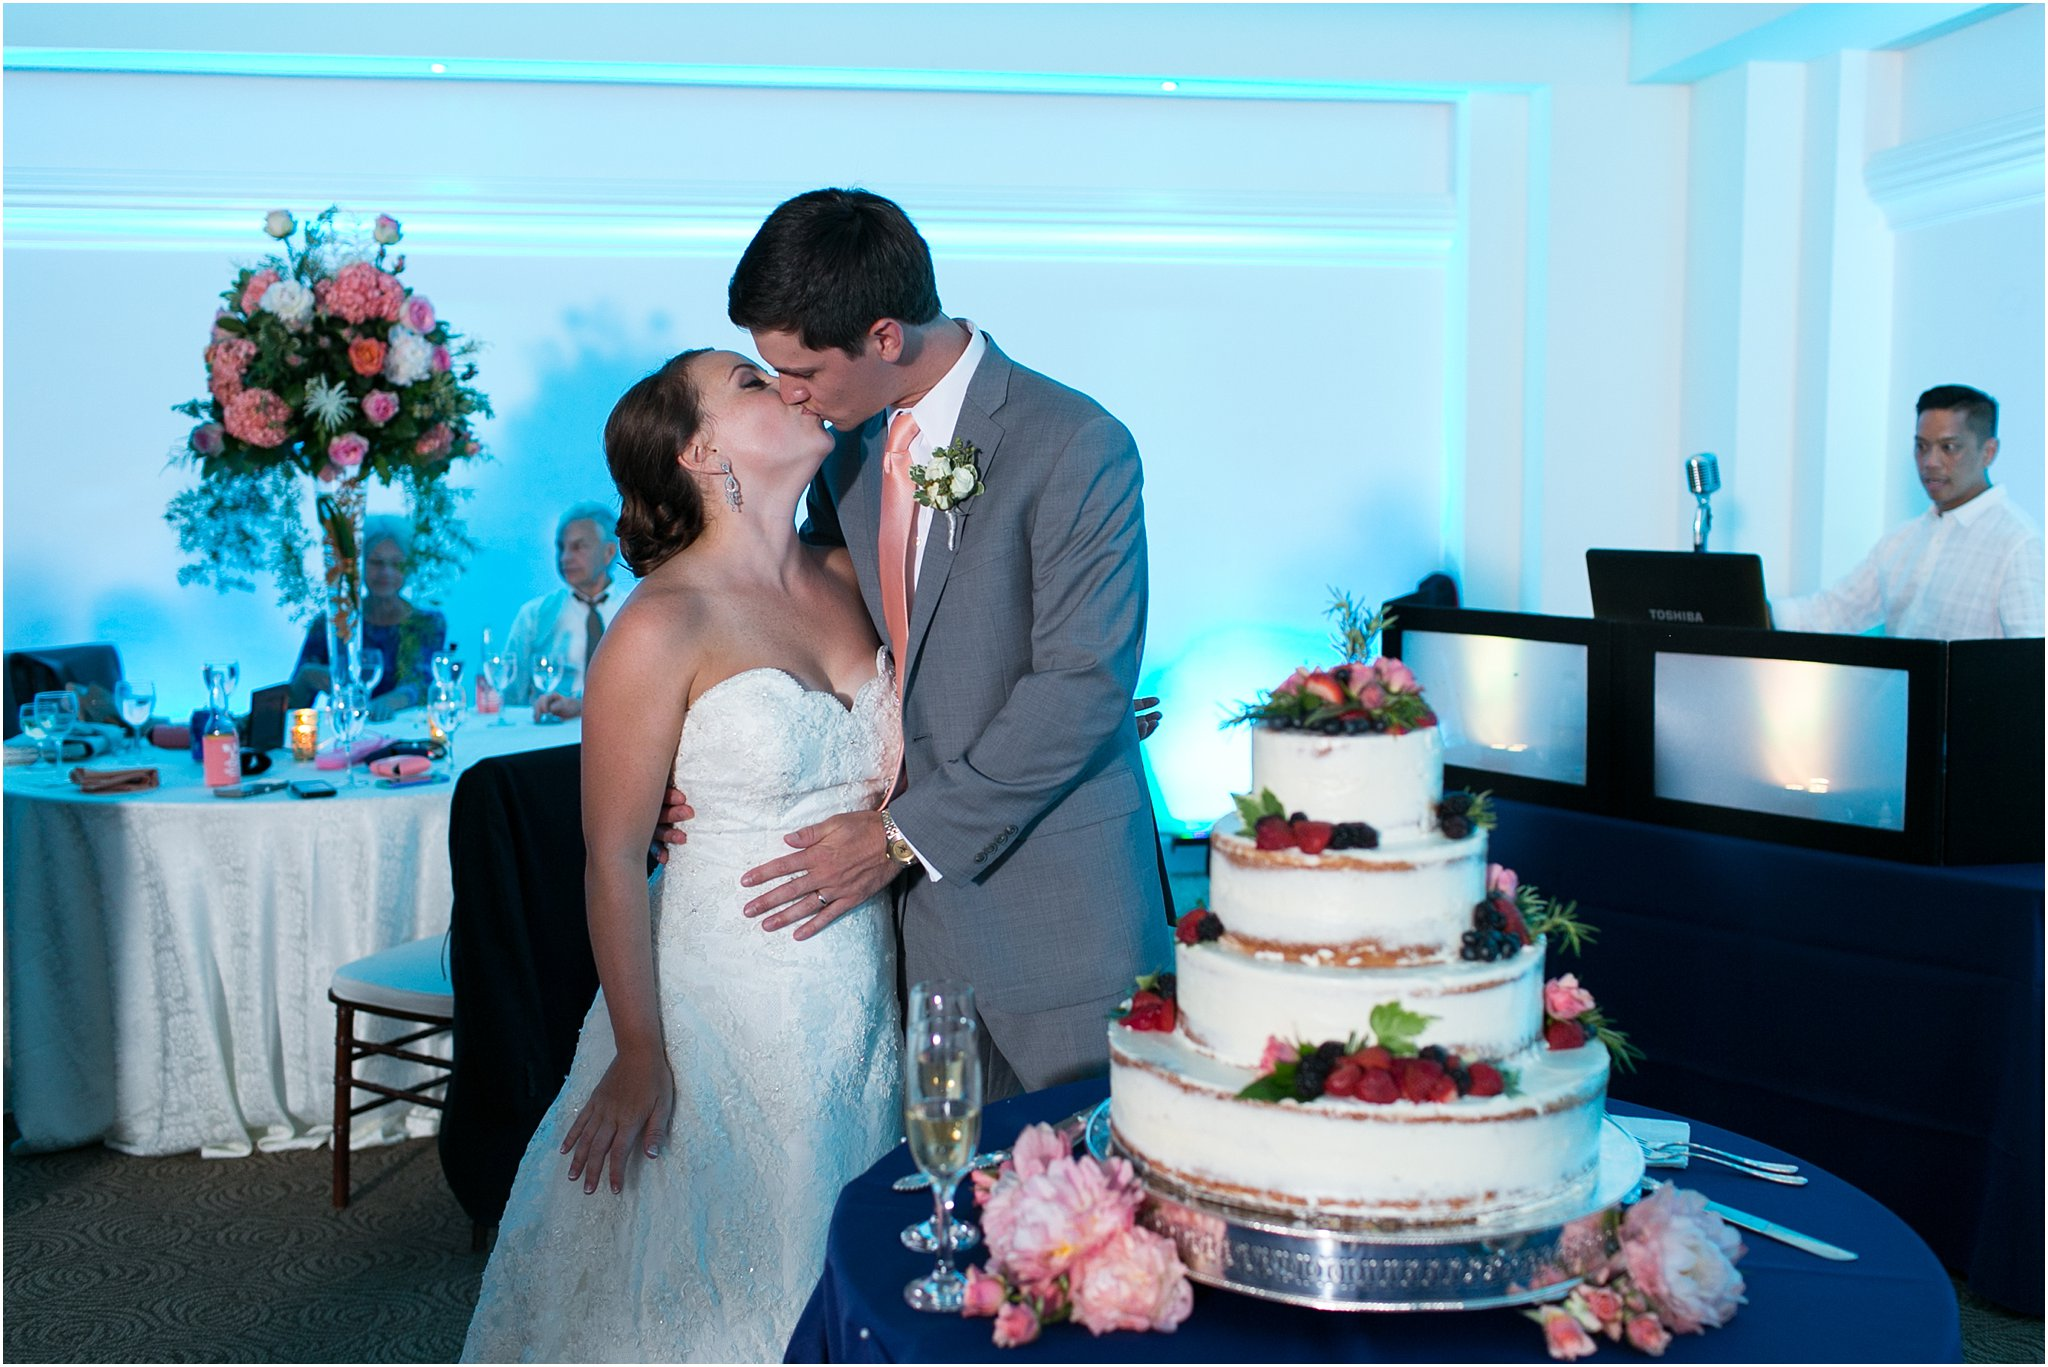 jessica_ryan_photography_wedding_photography_virginiabeach_virginia_candid_authentic_wedding_portraits_marina_shores_yacht_club_chesapeake_bay_1953